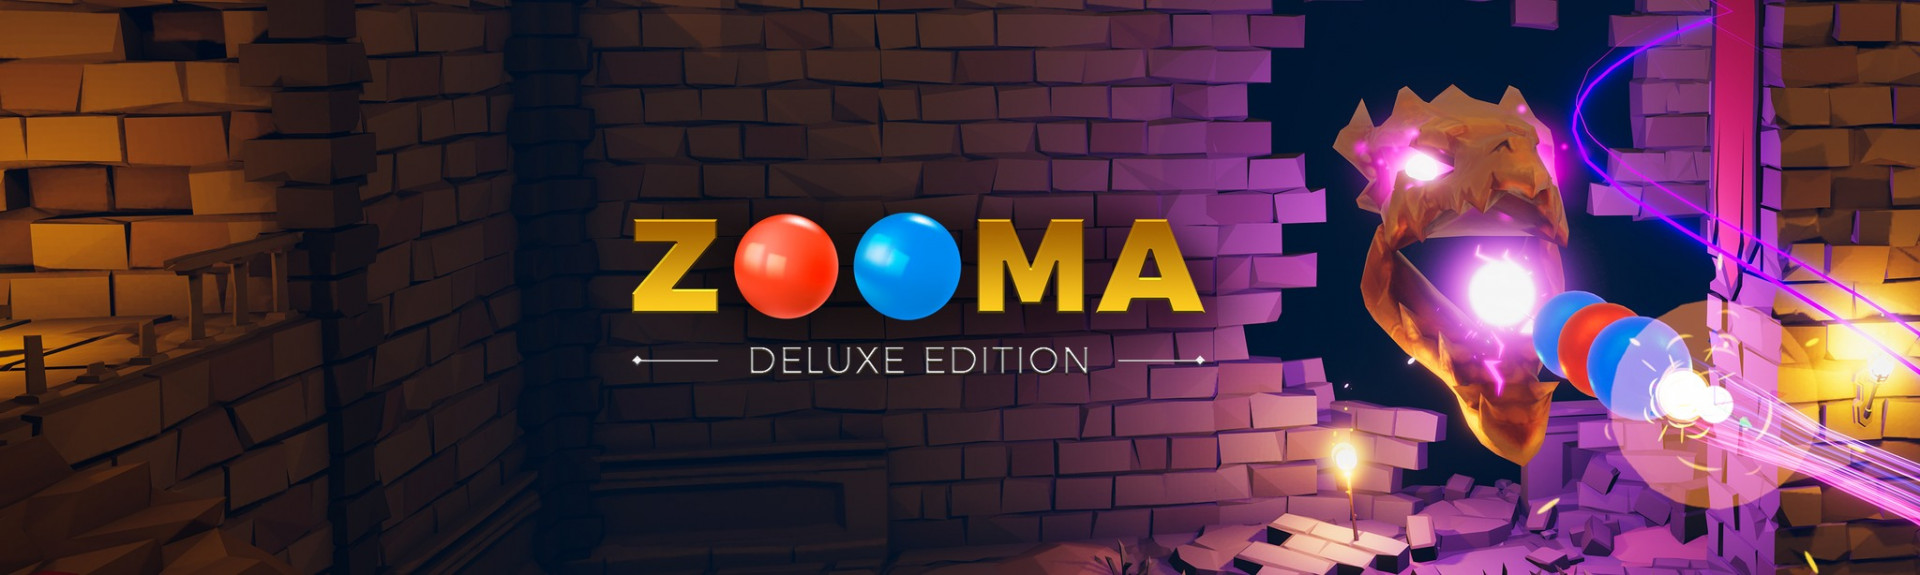 Zooma: Deluxe Edition (Demo)